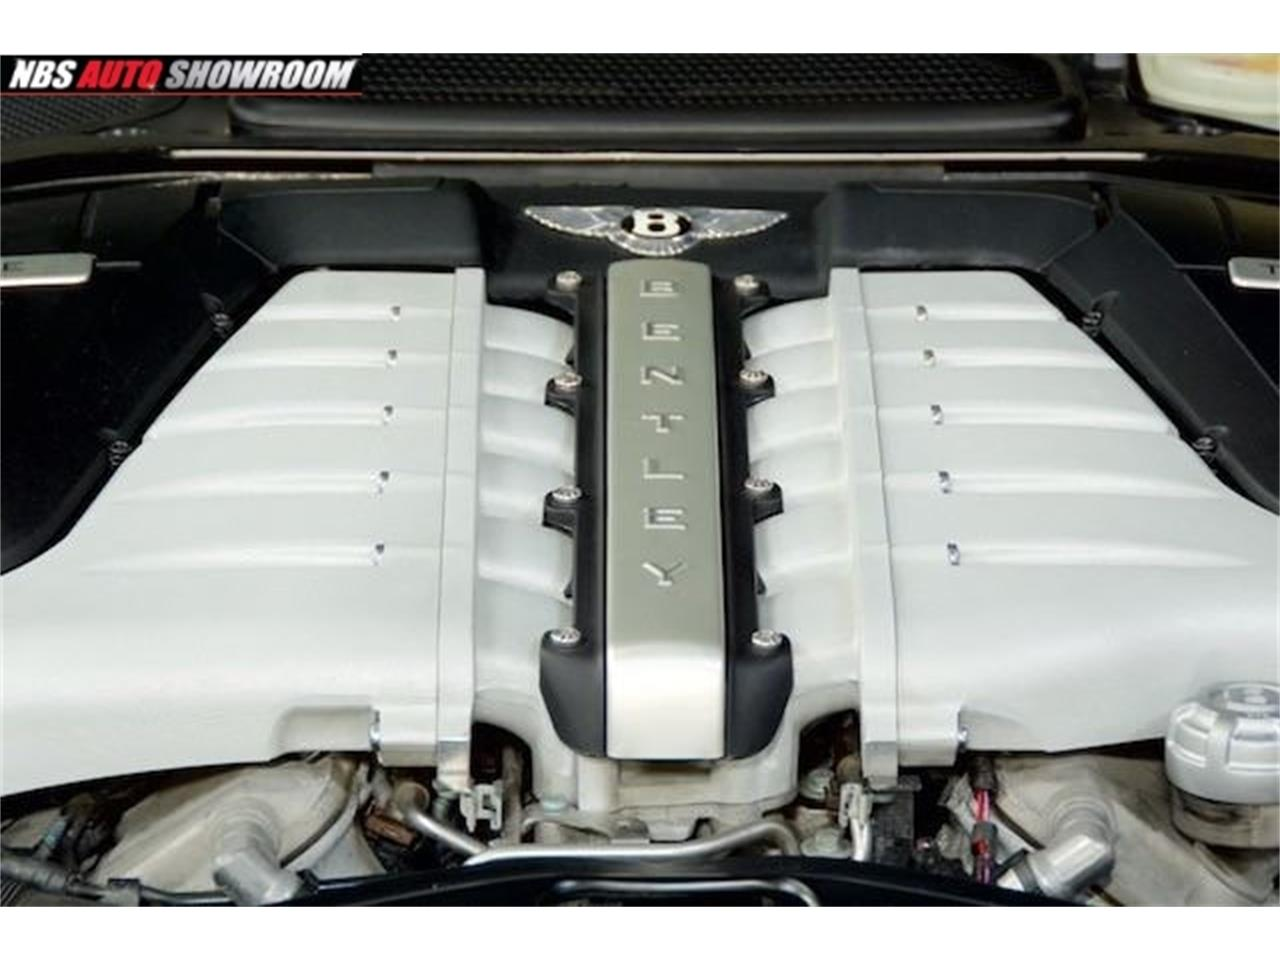 Large Picture of 2006 Continental - $41,000.00 Offered by NBS Auto Showroom - L512